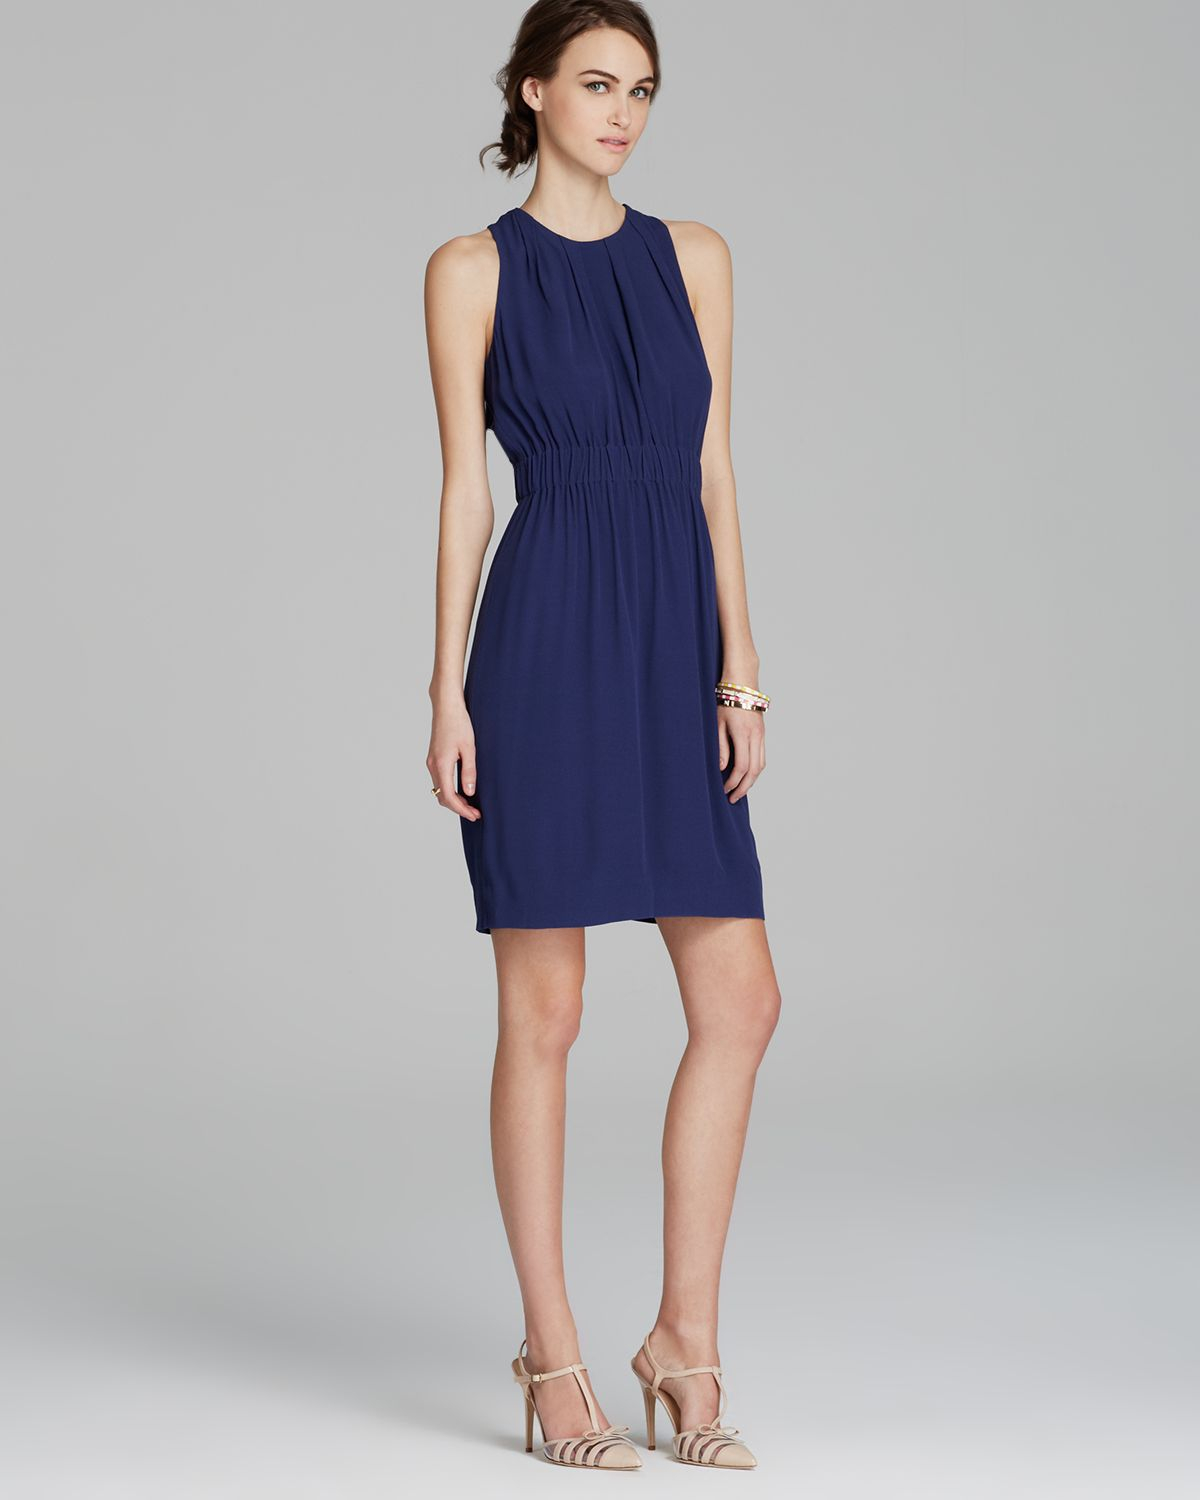 Kate Spade Carlie Dress In Blue French Navy Lyst